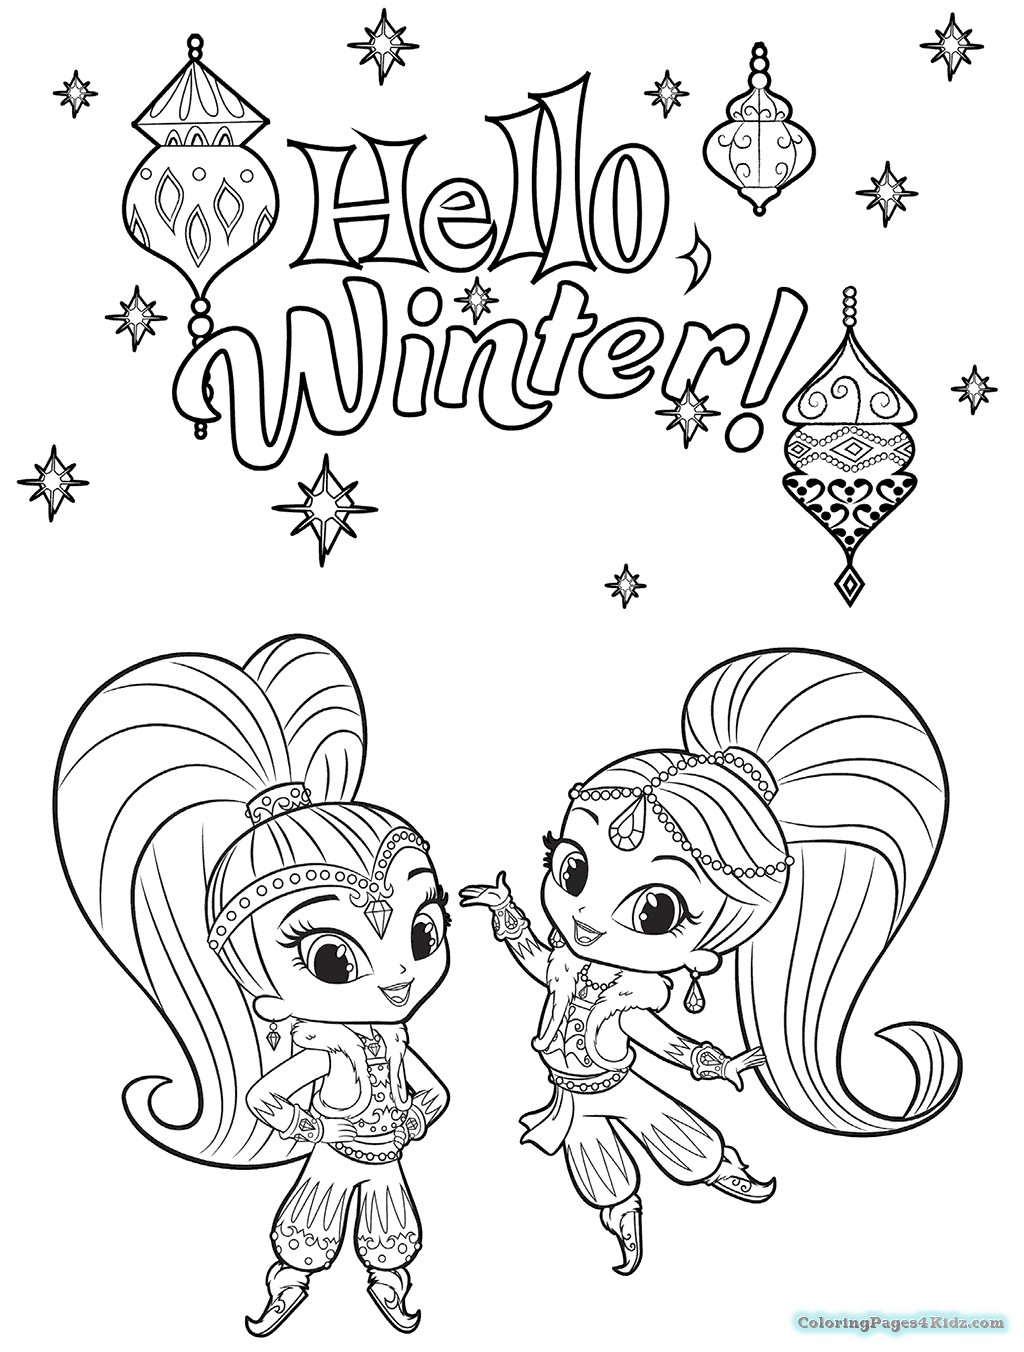 Shimmer And Shine Coloring Pages To Print Shimmer And Shine Coloring Pages Printable Free Printable Coloring